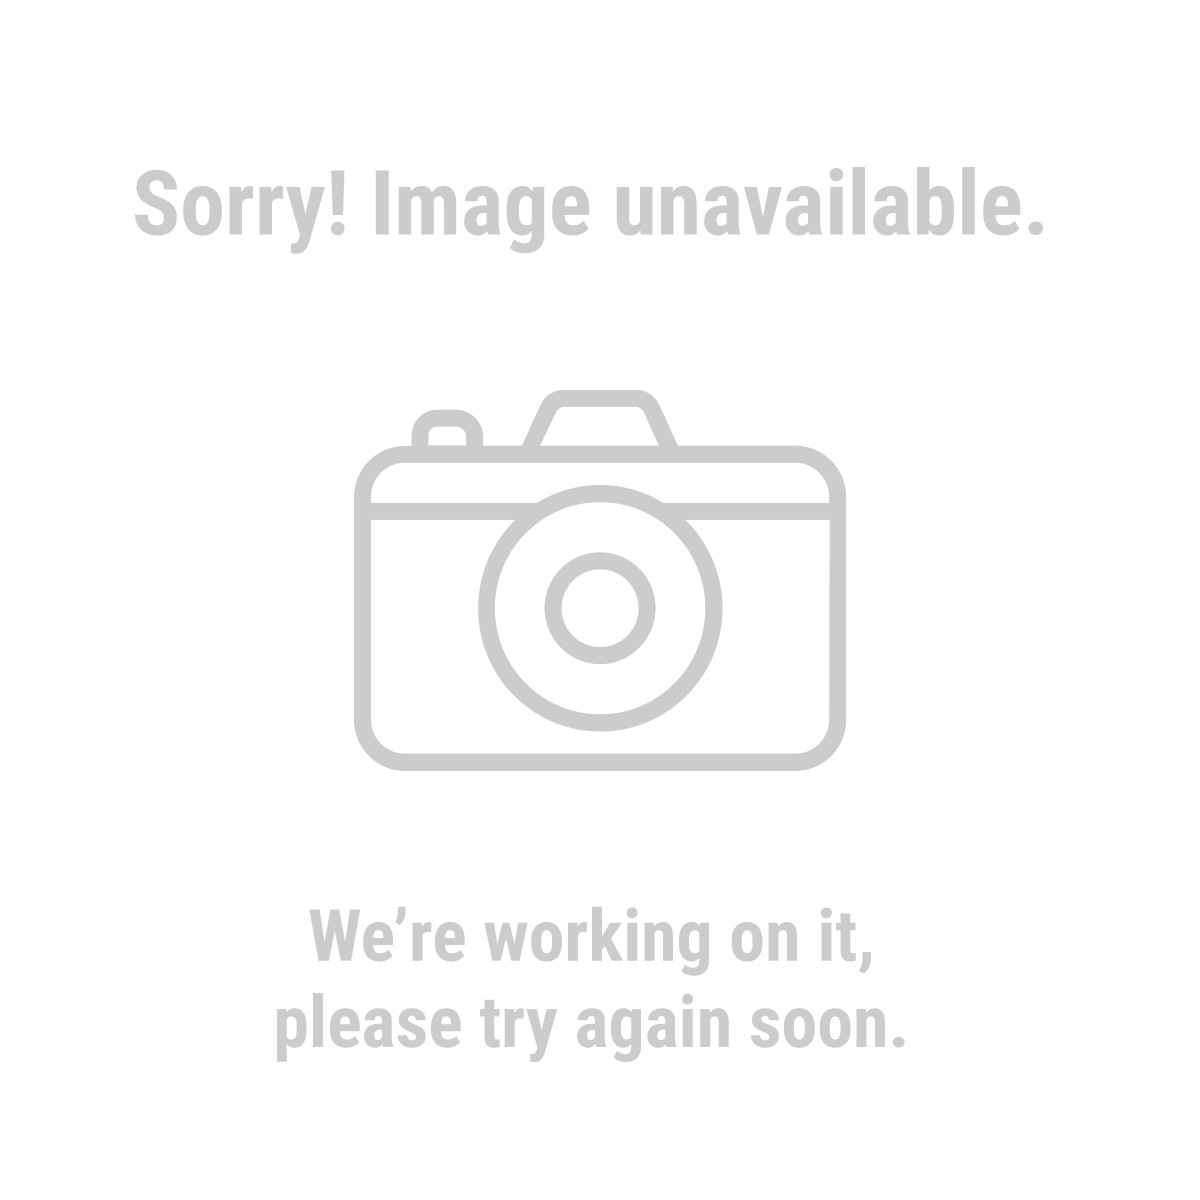 HARDY 61457 Split Leather Yellow Work Gloves with Cotton Back 5 Pr